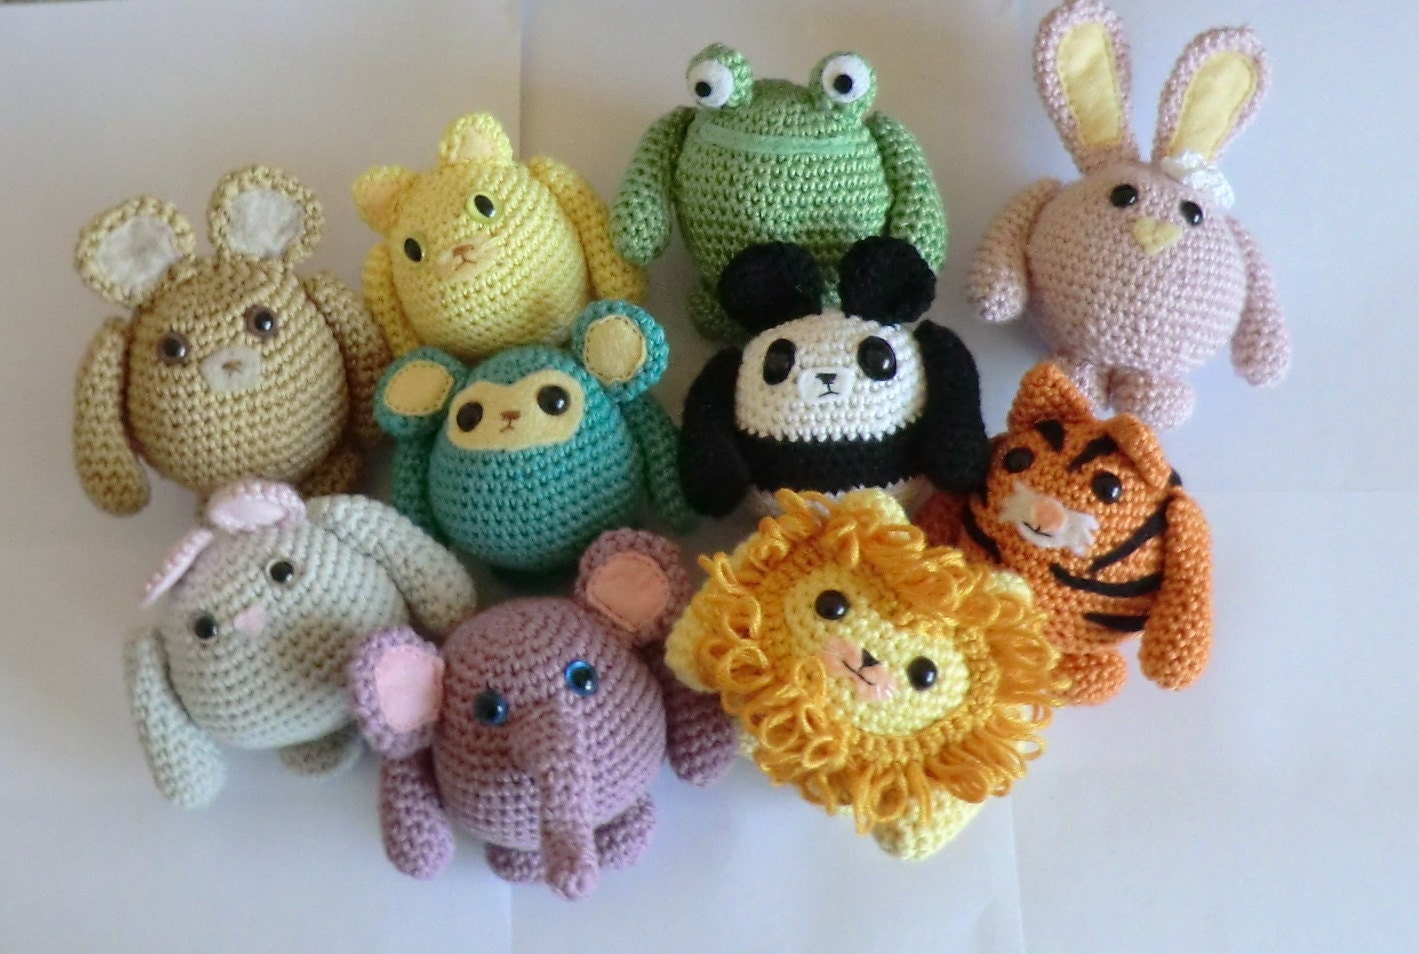 Crocheting Animals : Fat friends animal amigurumi crochet patterns by AmigurumiBarmy